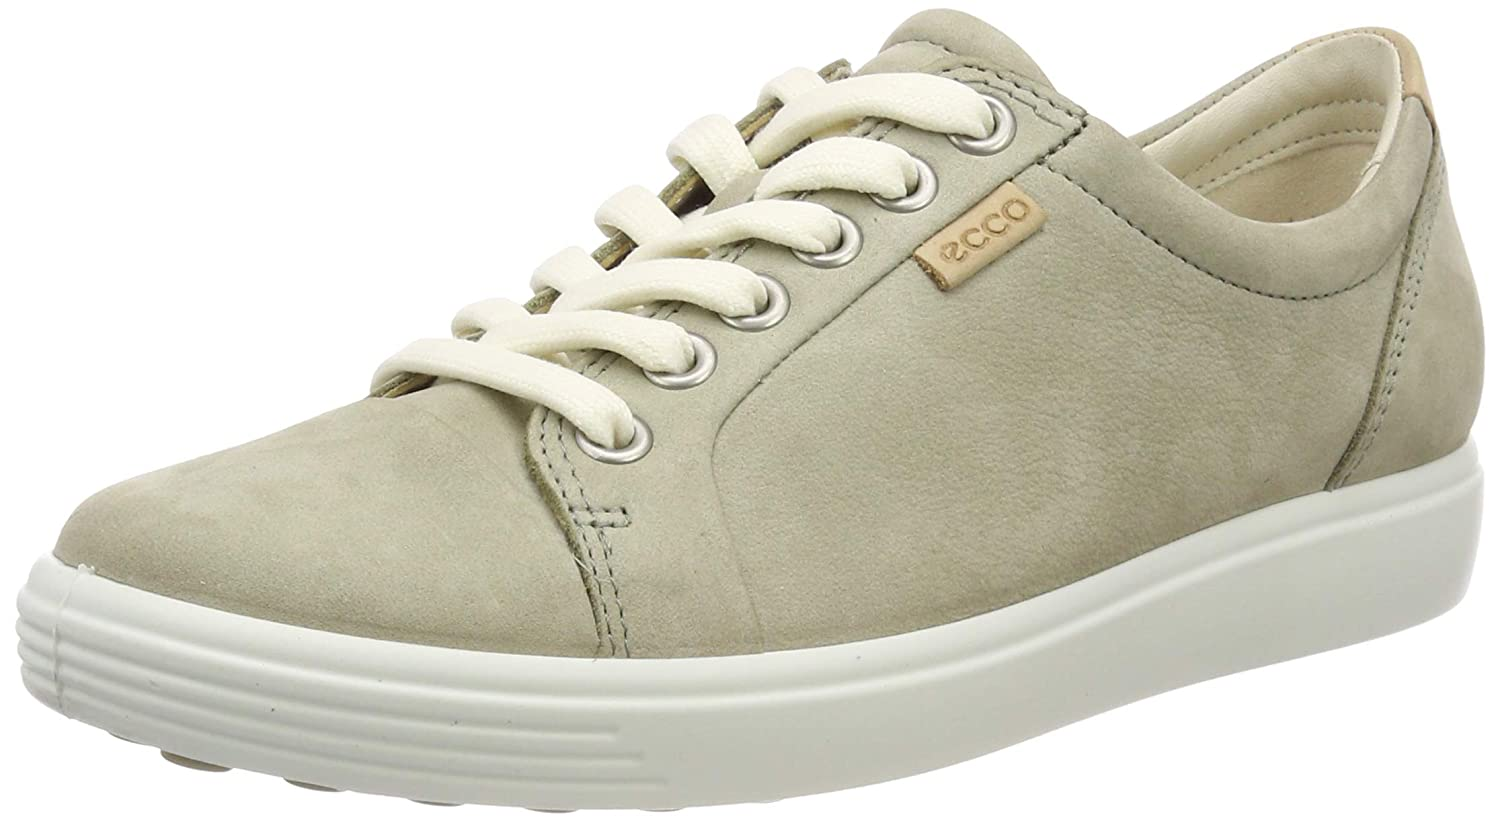 Sage ECCO shoes Women's Soft 7 Lace Fashion Sneakers